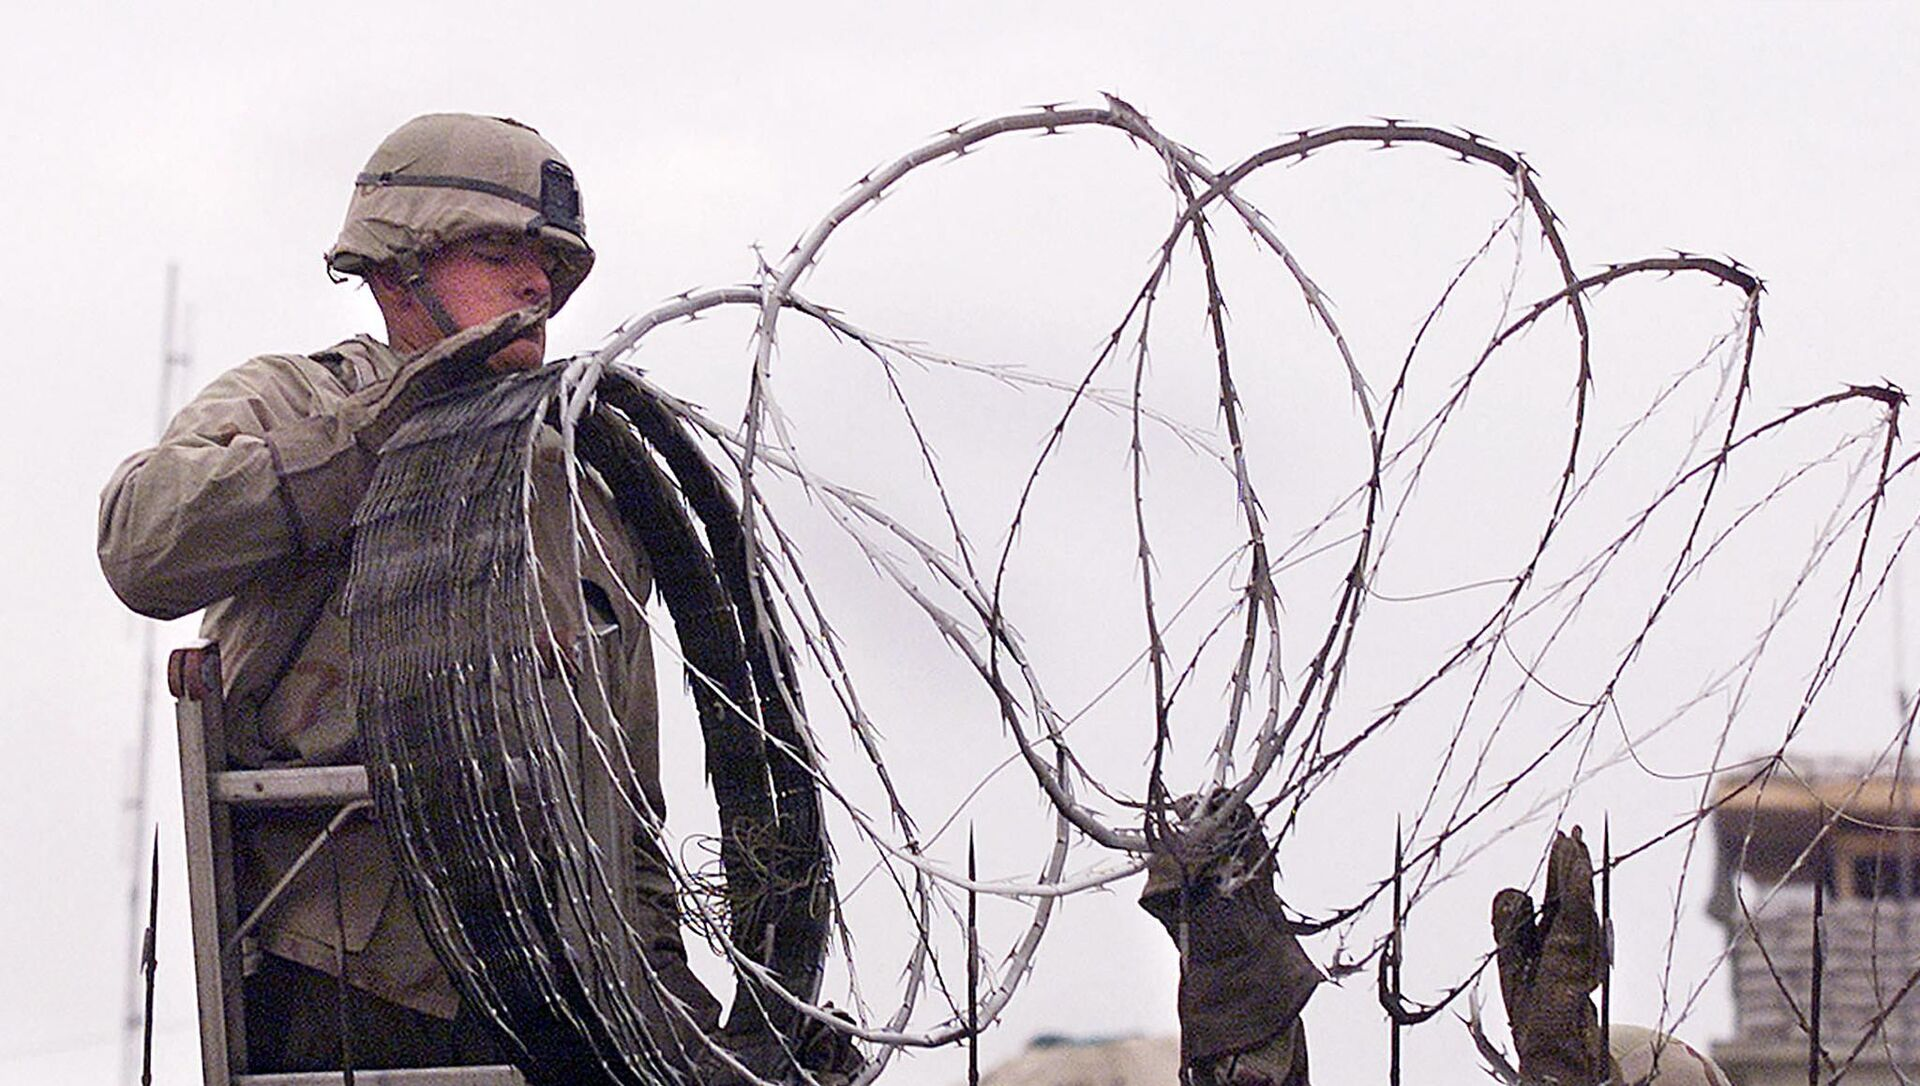 In this file photo a US Marine is given a hand using barbed wire to secure the walls the US embassy in Kabul on January 11, 2002. - The United States said on August 12, 2021 it was sending troops to the international airport in Afghanistan's capital Kabul to pull out US embassy staff as the Taliban makes rapid gains.We are further reducing our civilian footprint in Kabul in light of the evolving security situation, State Department spokesman Ned Price told reporters.This president prioritizes above all else the safety and security of Americans who are serving overseas, he said of Joe Biden, who has ordered a withdrawal of US troops from Afghanistan after nearly 20 years. - Sputnik International, 1920, 13.08.2021